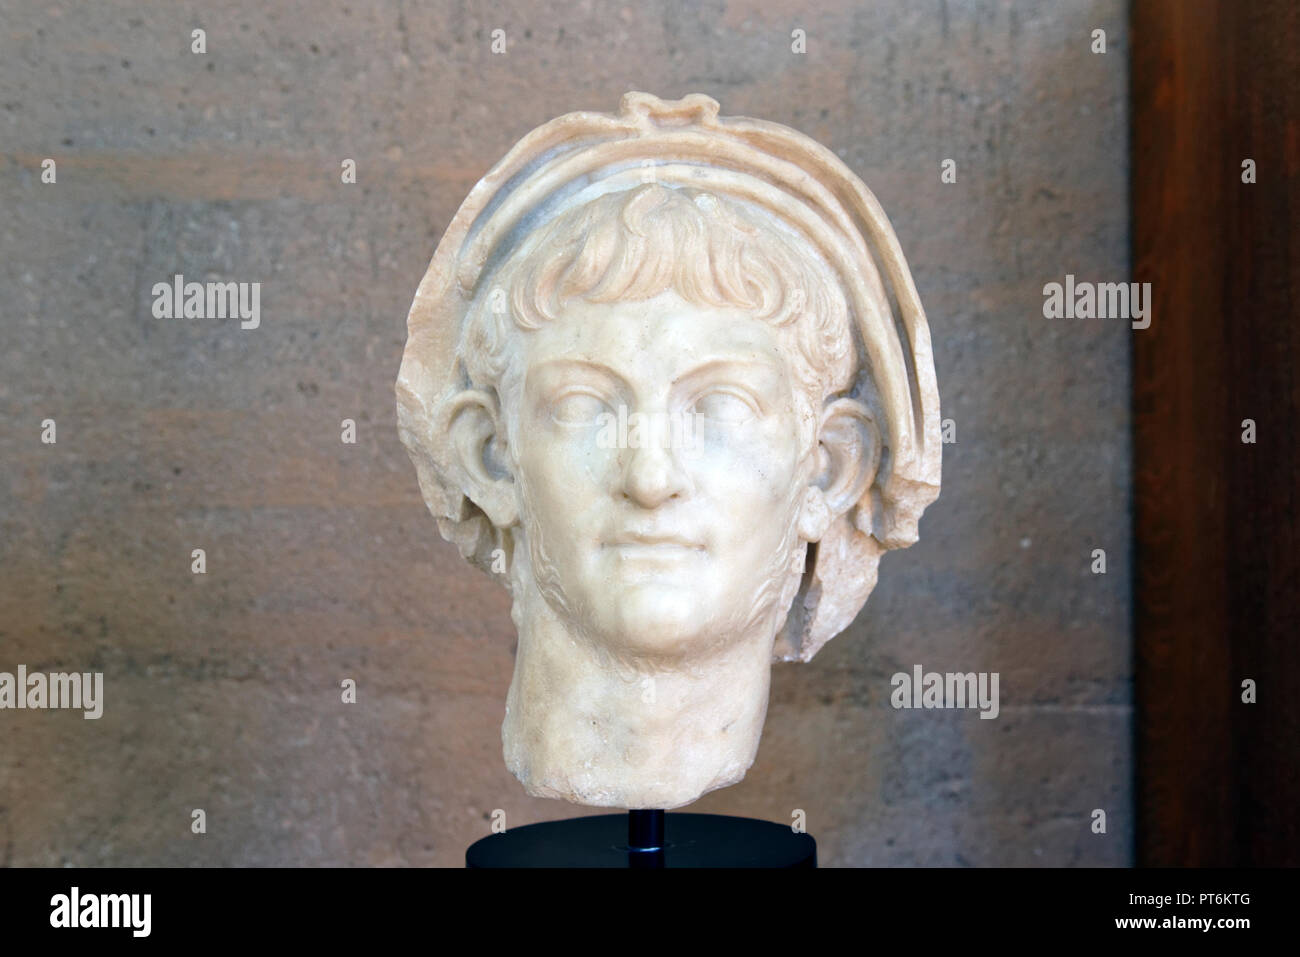 Portrait of the Emperor Nero. From the Julian Basilica. Archaeological Museum. Ancient Corinth. Peloponnese. Greece. Dates from 60 AD. - Stock Image